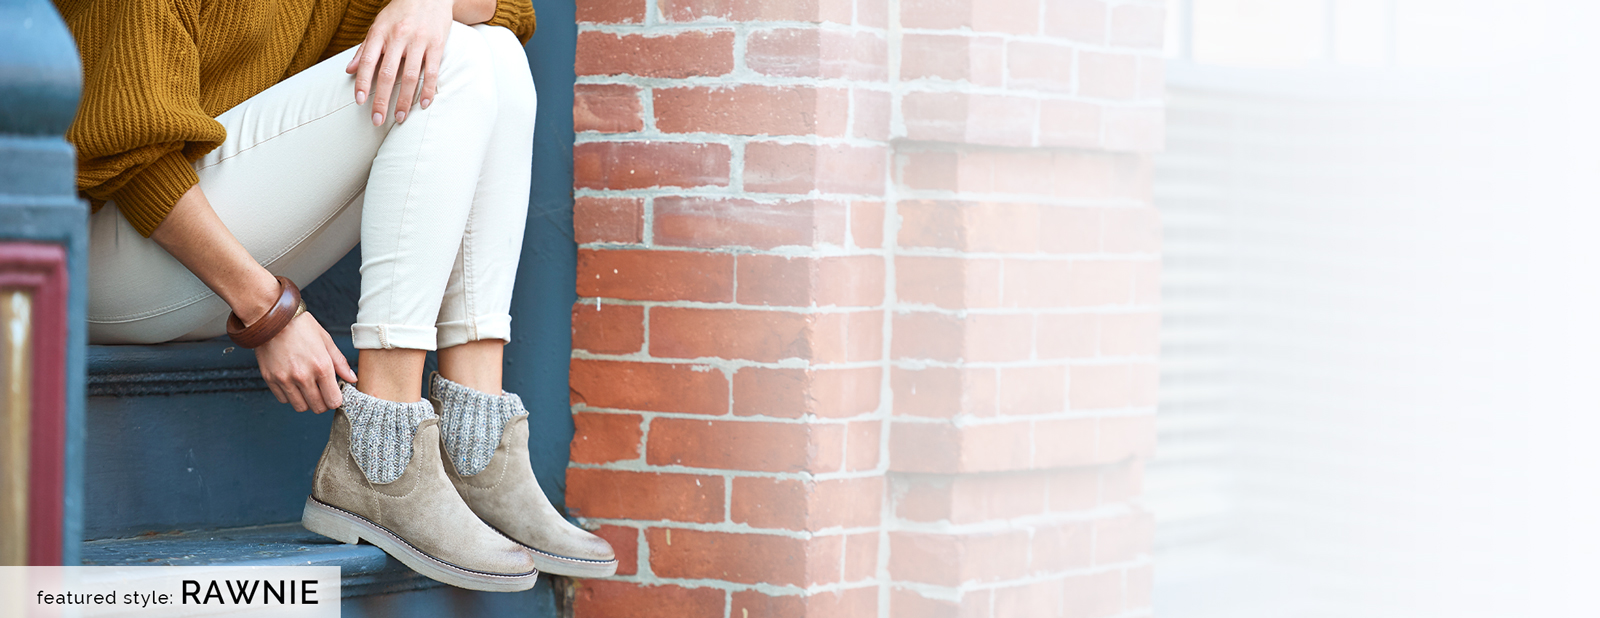 Featured style: Rawnie in Light Taupe Suede (tan).